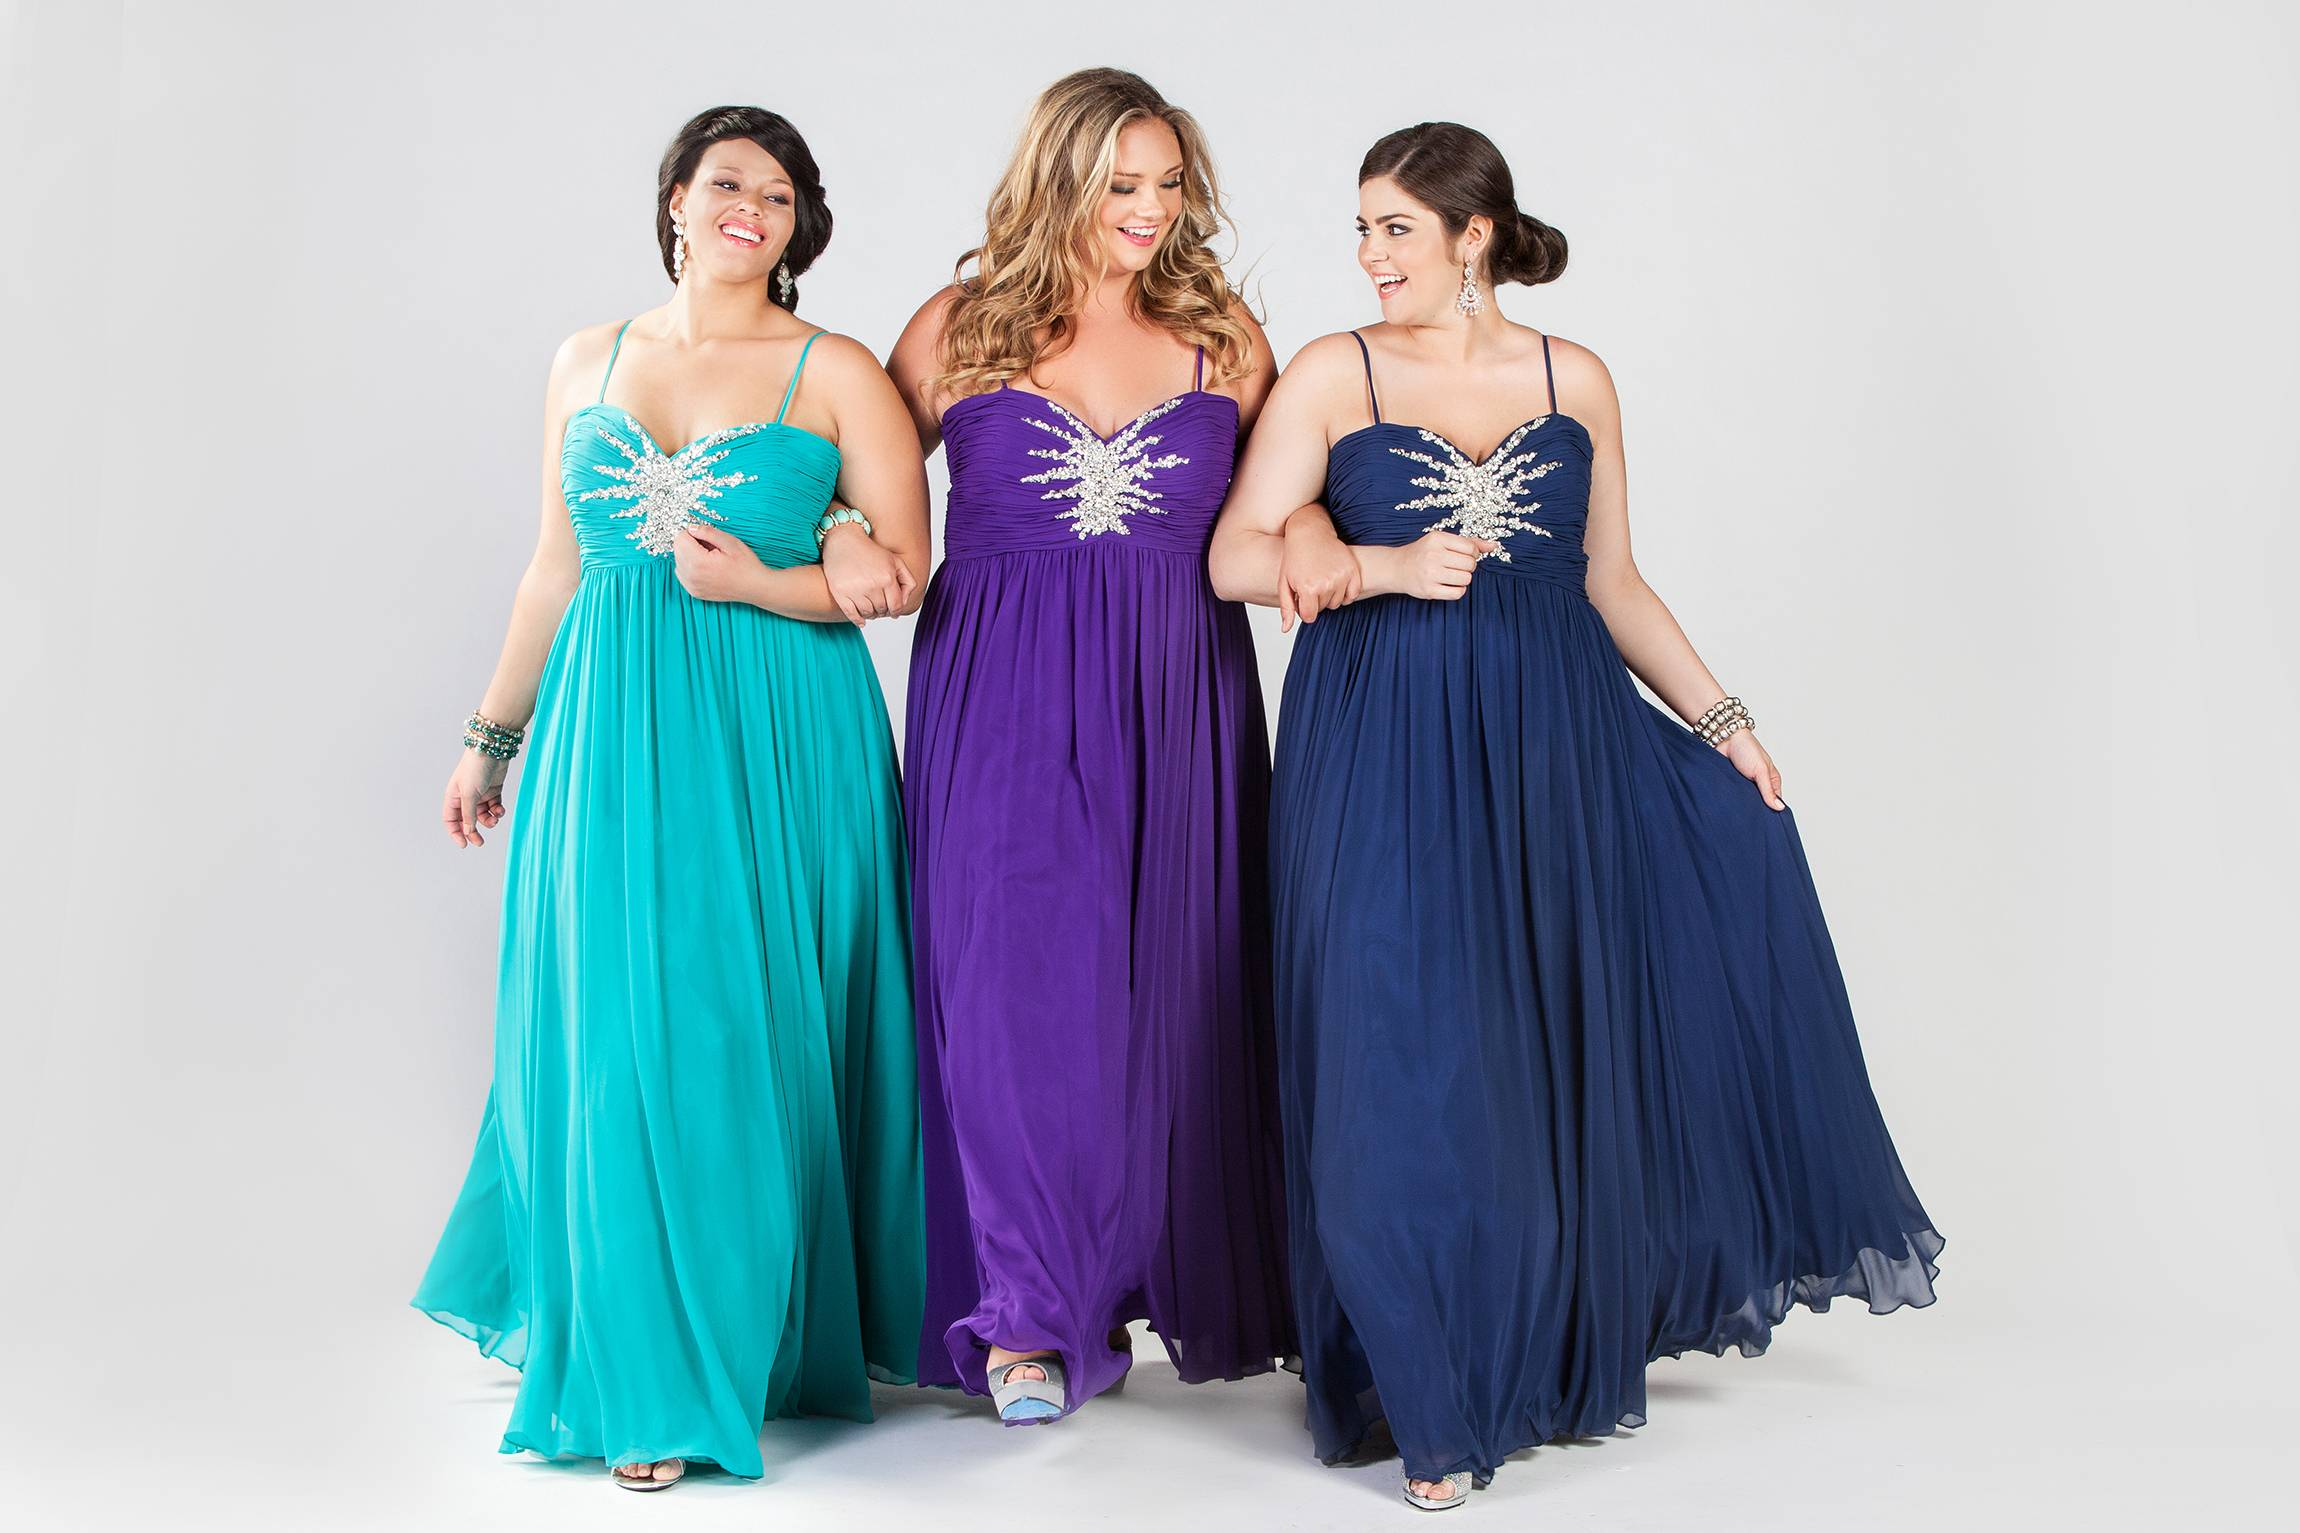 Clothes shopping for plus size teens can be frustrating in general, but shopping for a dream prom dress can be a tear-inducing, hair-pulling morass of bad design and few options -- especially for girls who want a dress that hugs the body instead of tenting it.